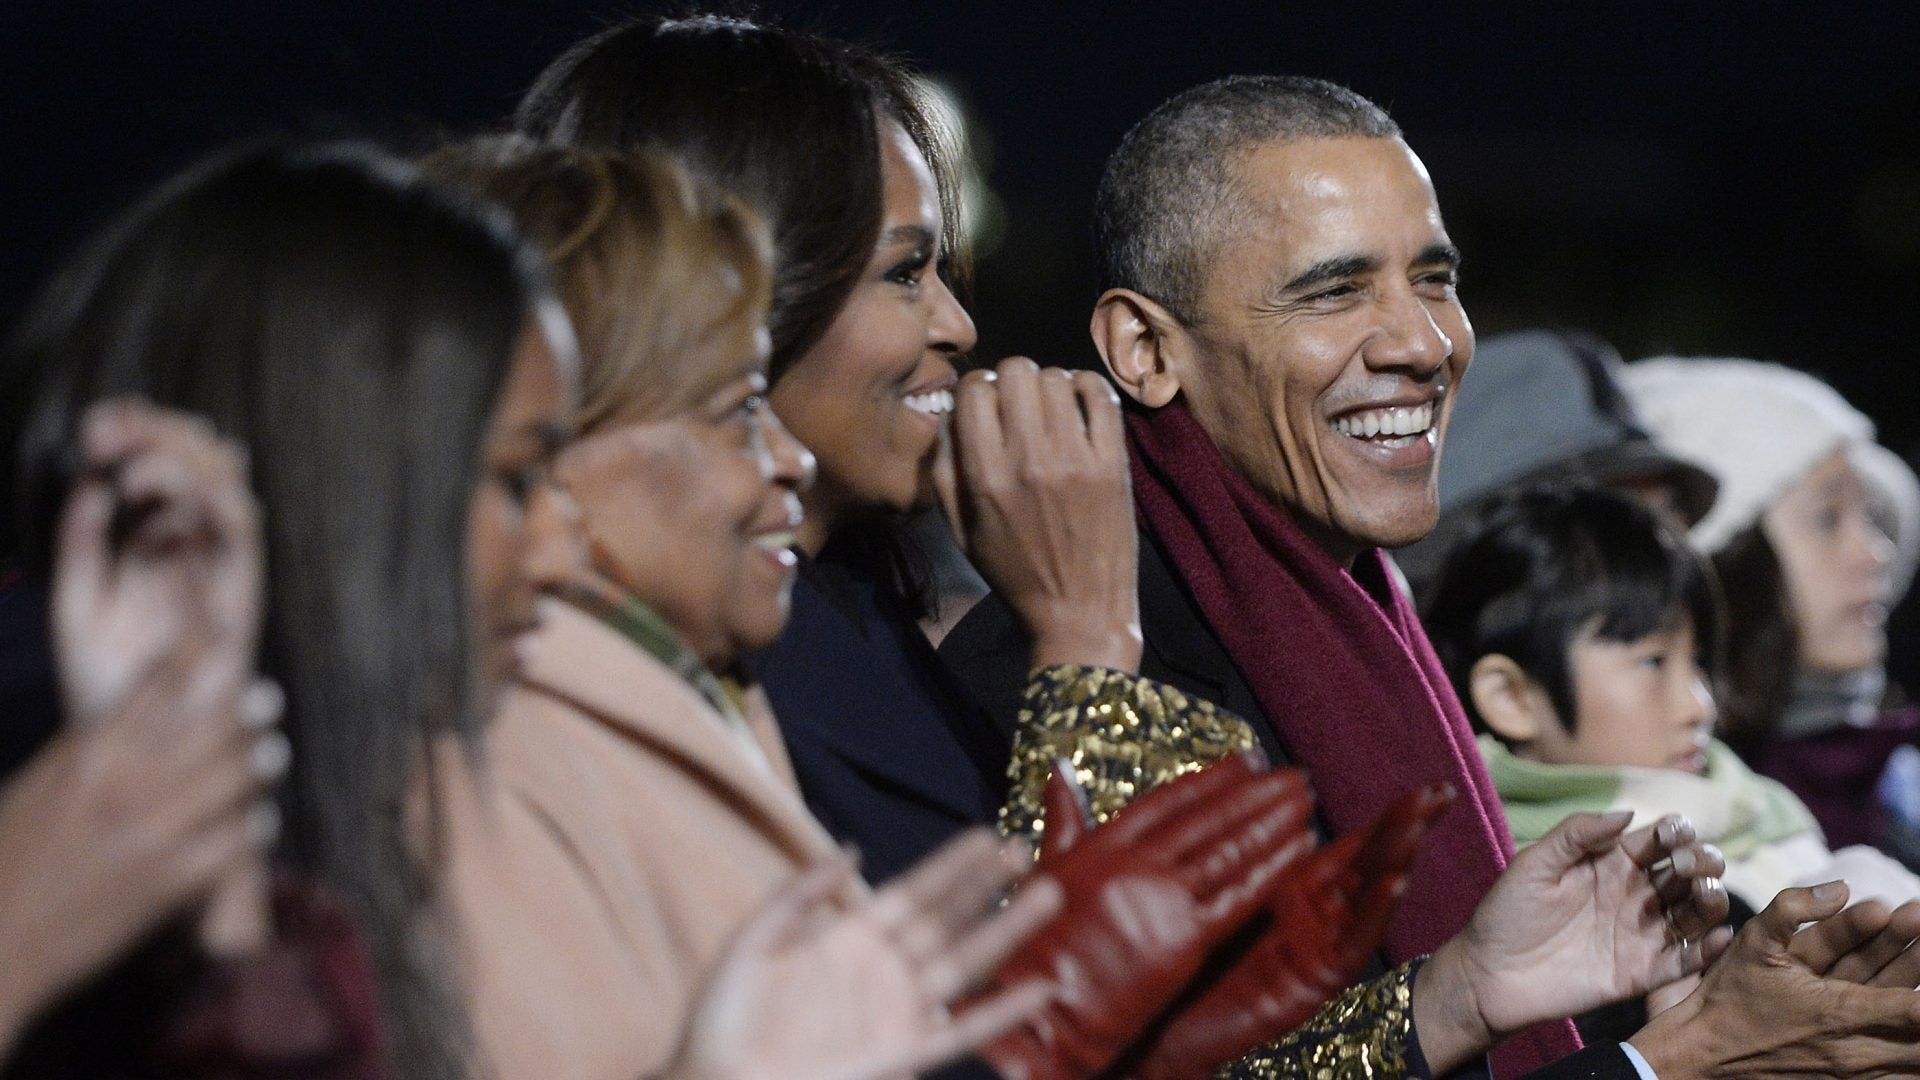 Barack Obama Recalls Bringing Holiday Magic To All At The White House